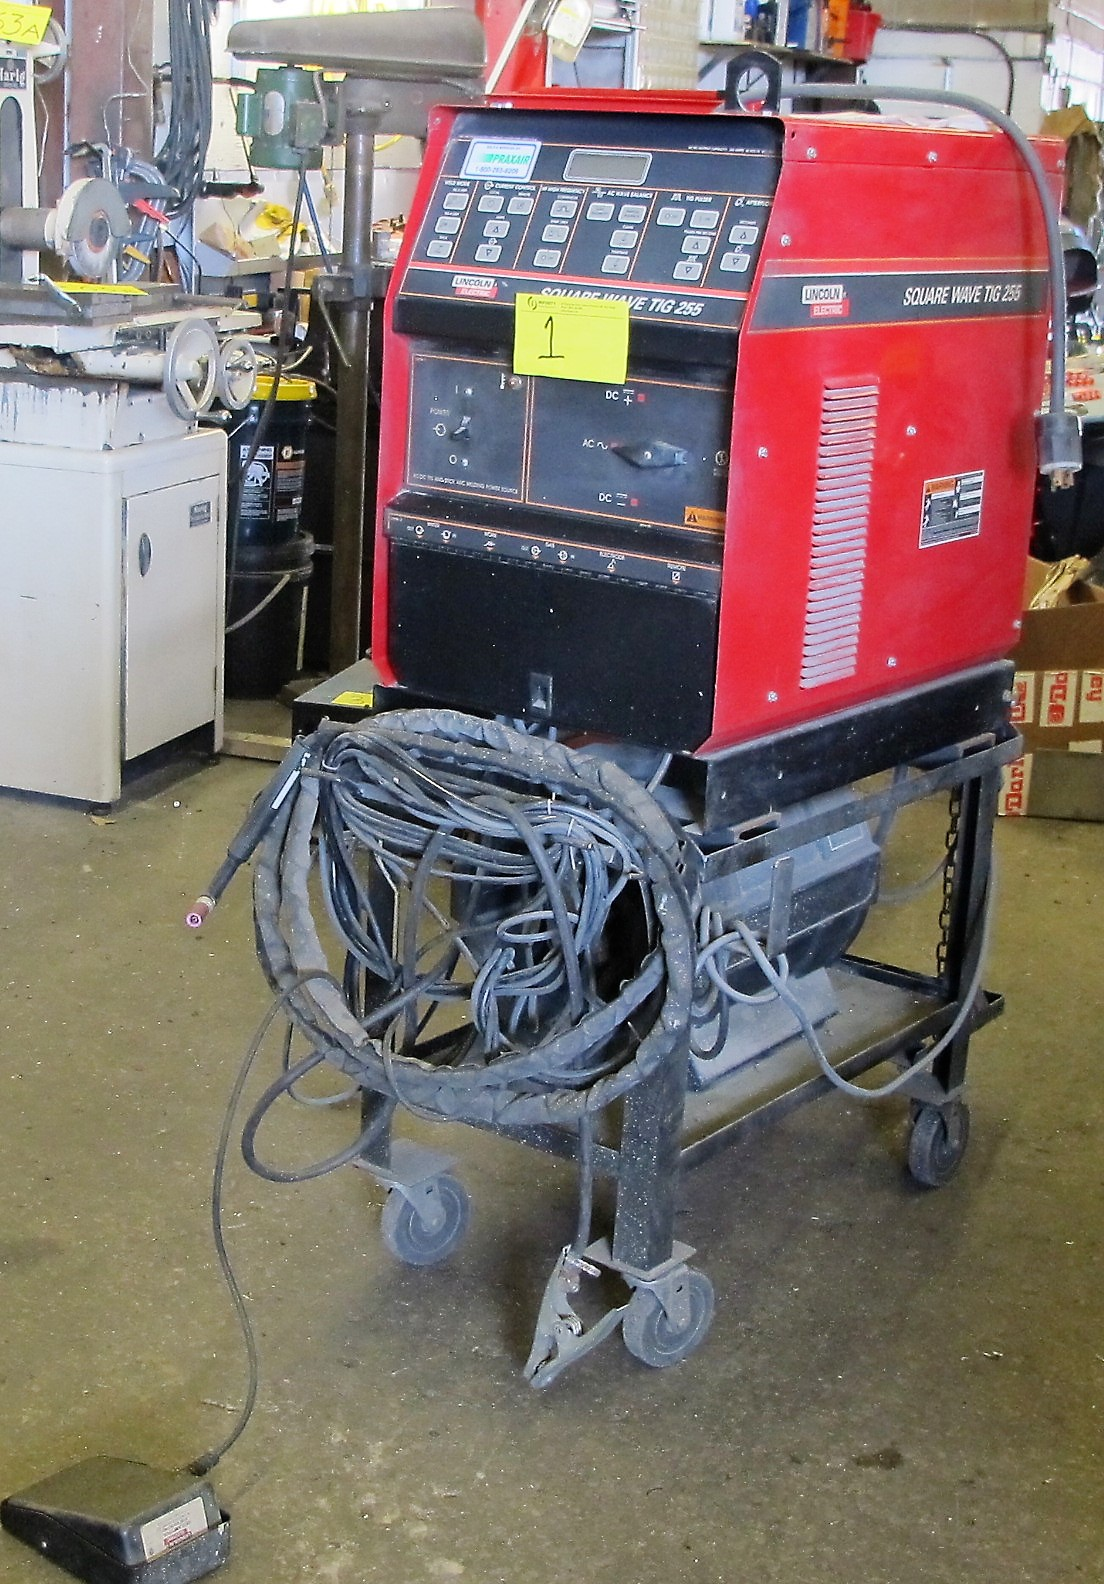 LINCOLN ELECTRIC SQUARE WAVE TIG 255 WELDER W/LA105939 COOLING SYSTEM, CART AND CABLES